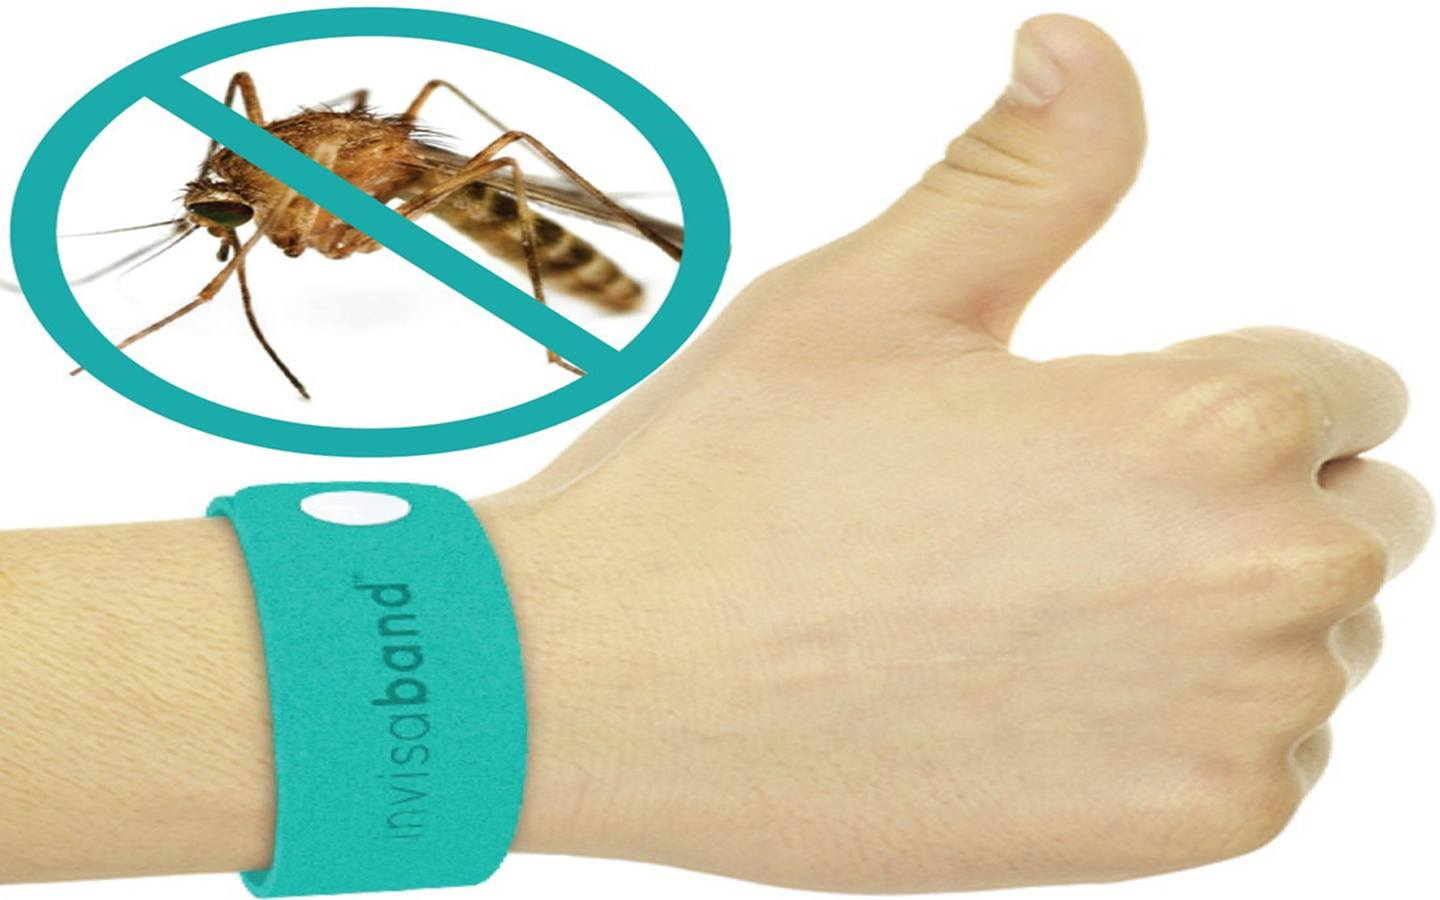 Mosquito Repellent Bracelets with mosquito banned mark on white background.